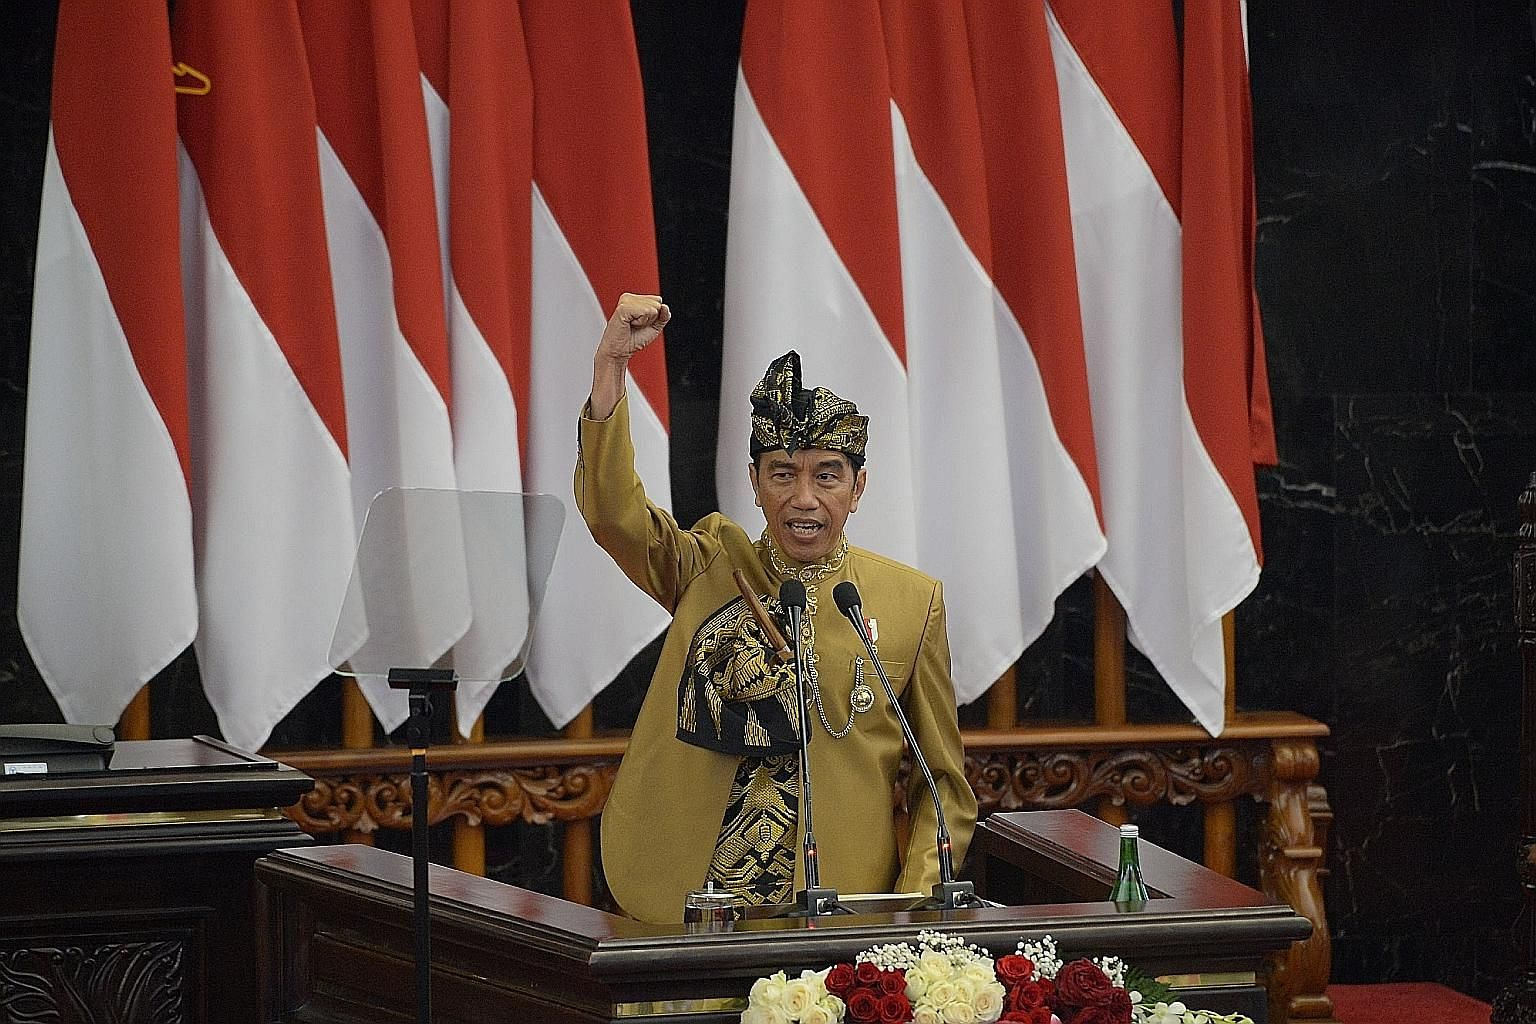 Indonesian President Joko Widodo, in the traditional attire of the Sasak tribe from Lombok island, delivering a speech in Parliament in Jakarta yesterday, ahead of the country's Independence Day today.